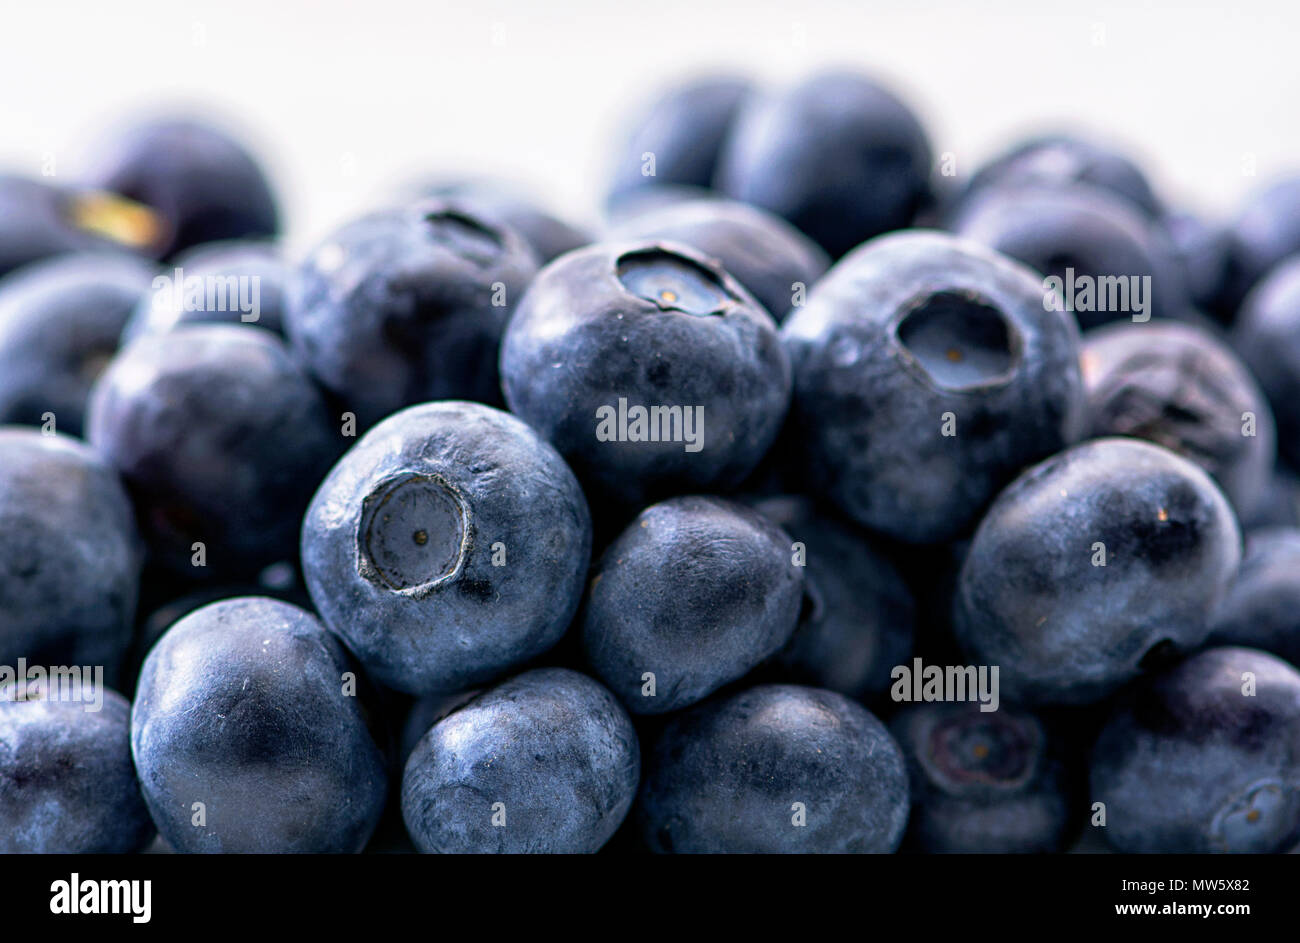 Bunch of tasty, juicy, fresh and healthy blueberries against white background - Stock Image